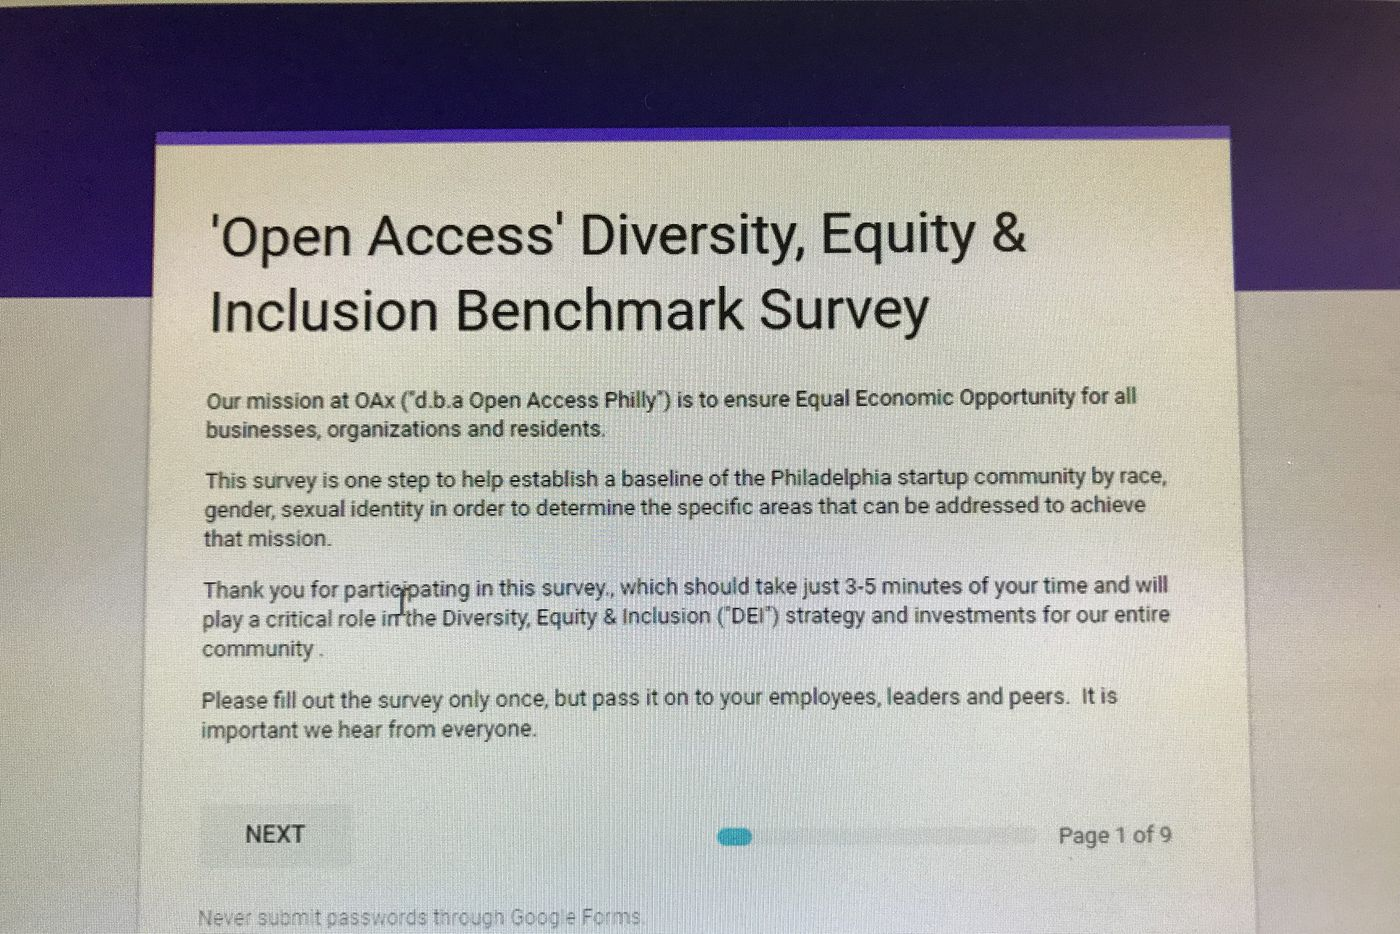 Philadelphia's start-up community launches data survey to address its diversity shortcomings